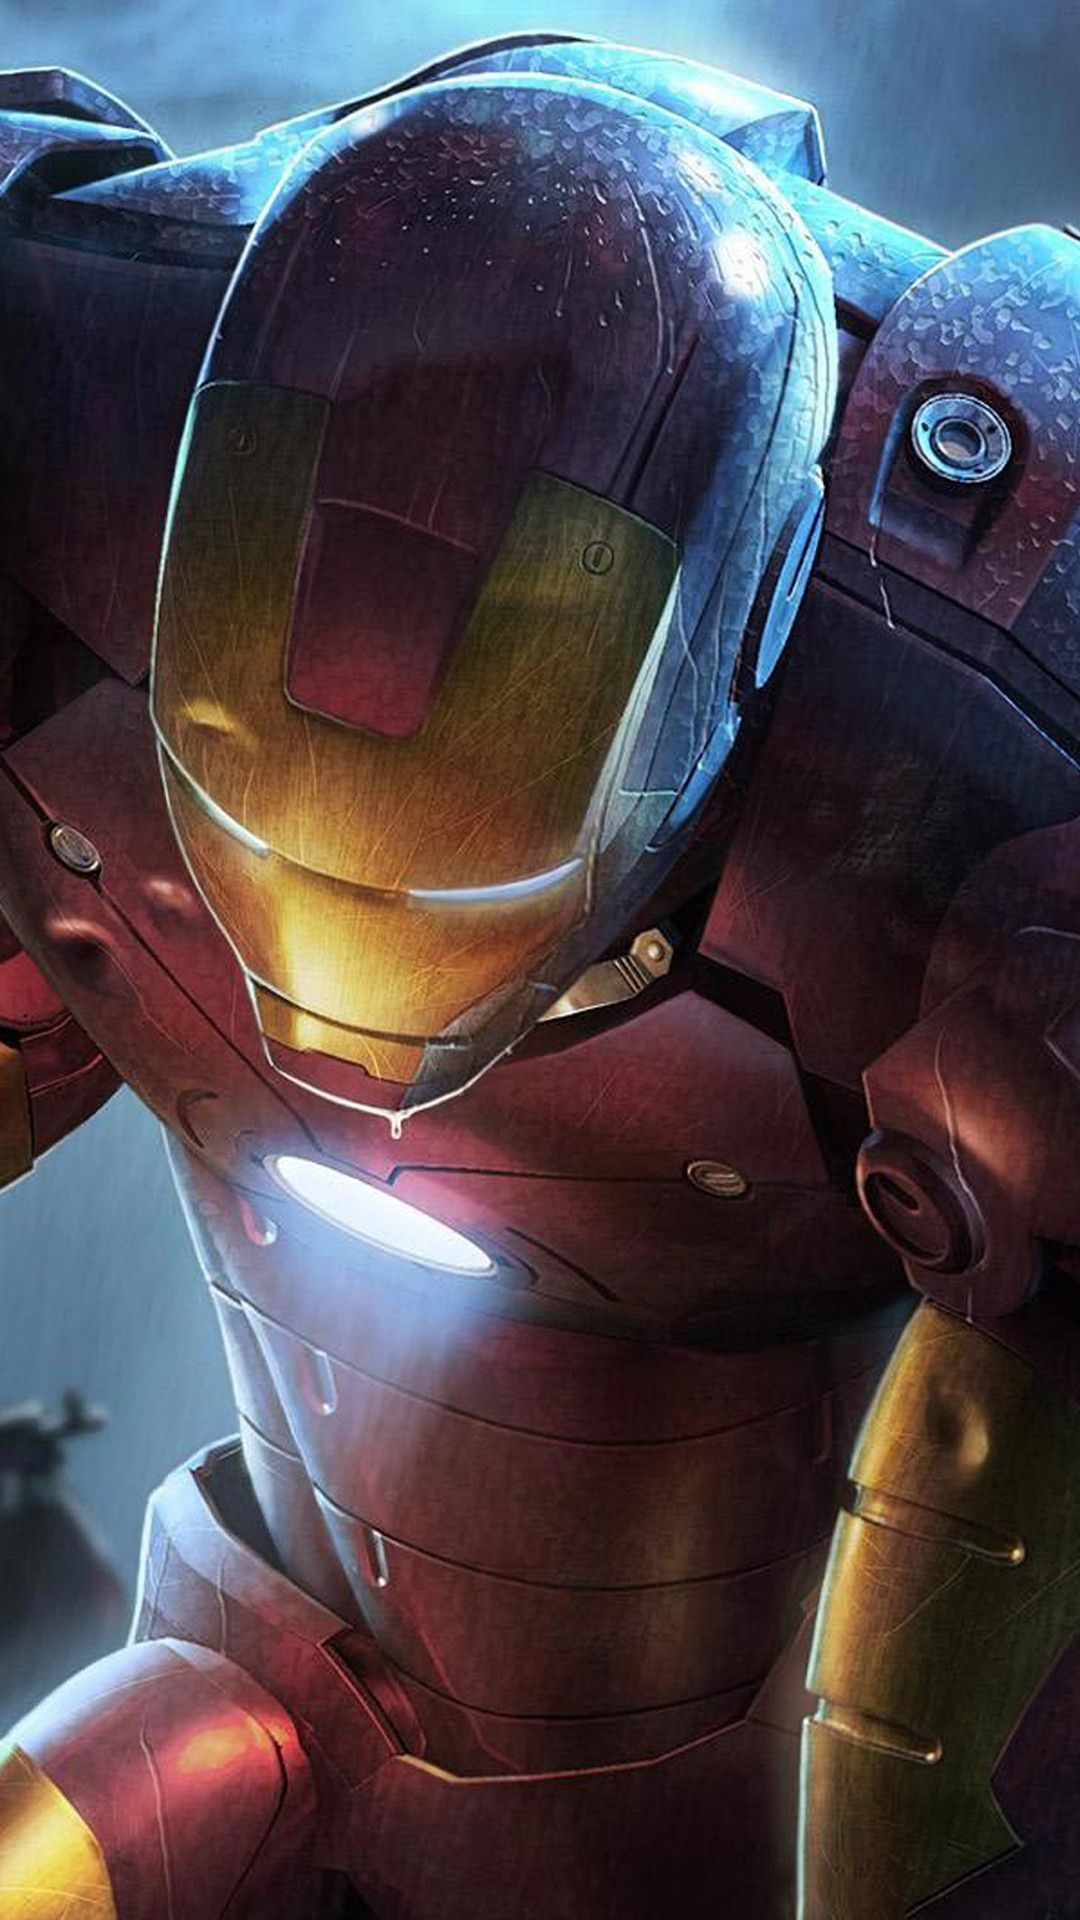 Vertical Full Hd Quality Pictures Vertical Wallpapers Iron Man